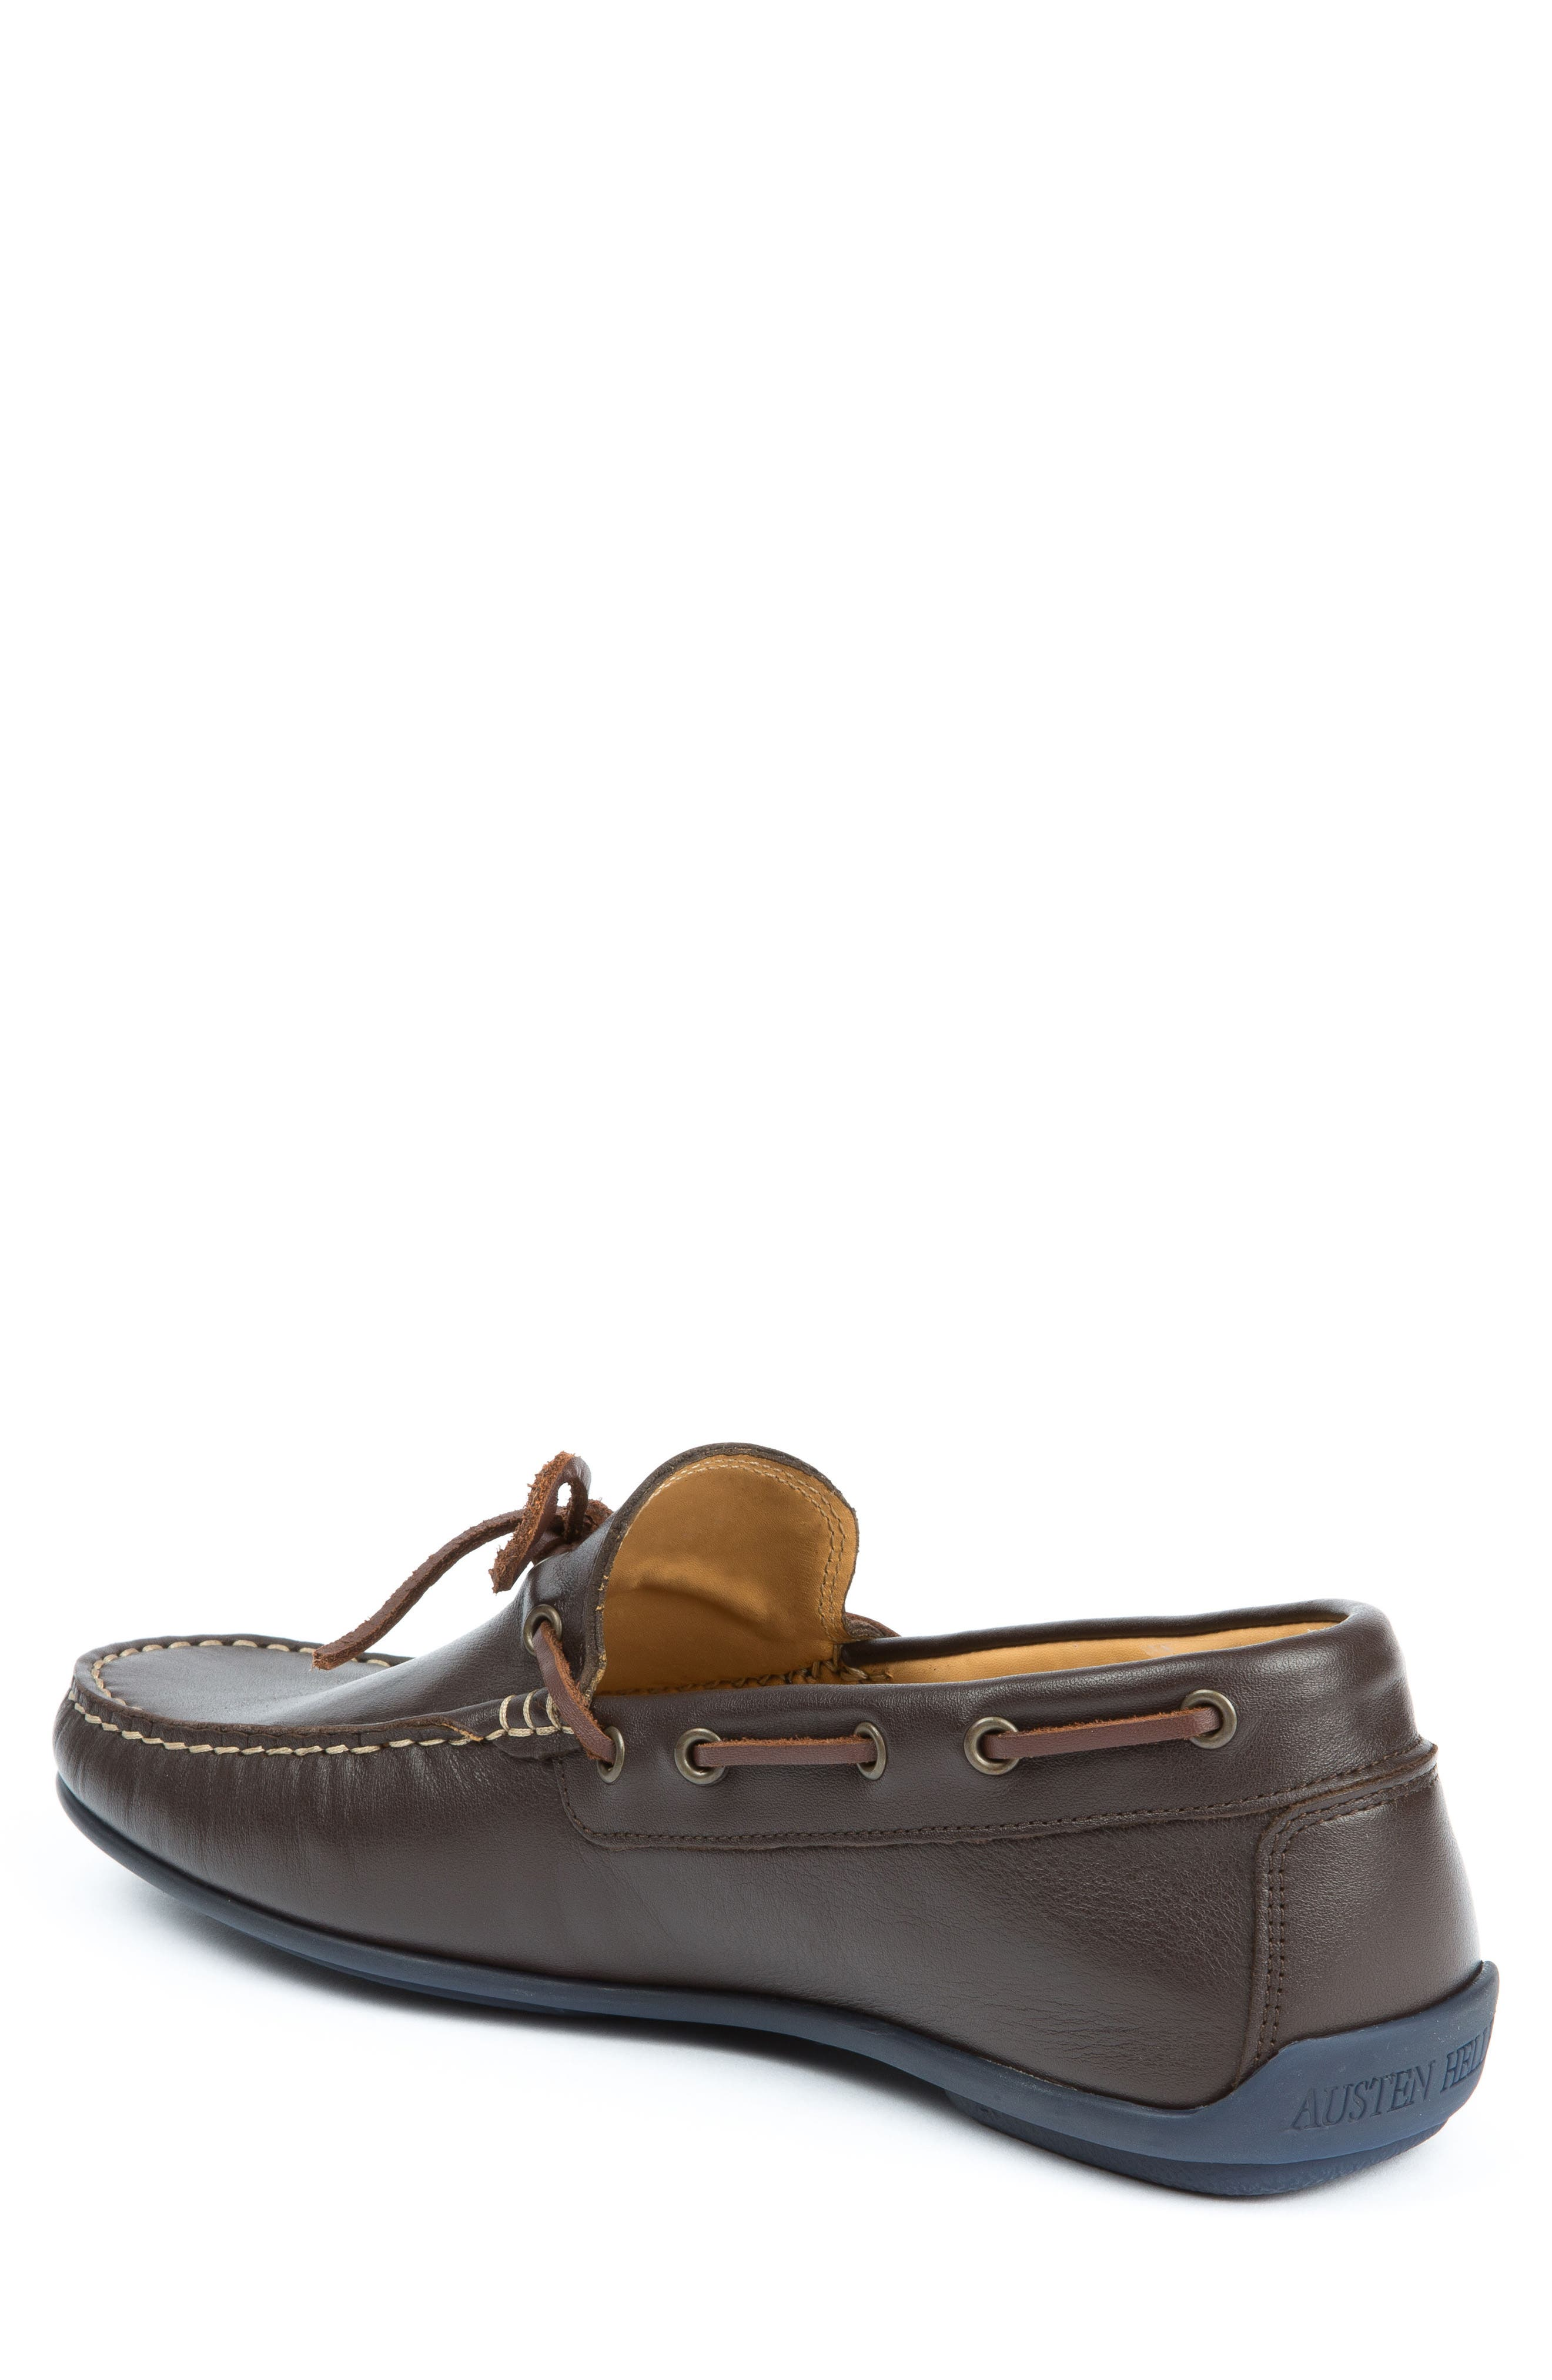 Fillmores Loafer,                             Alternate thumbnail 2, color,                             Brown Leather/ Natural/ Navy